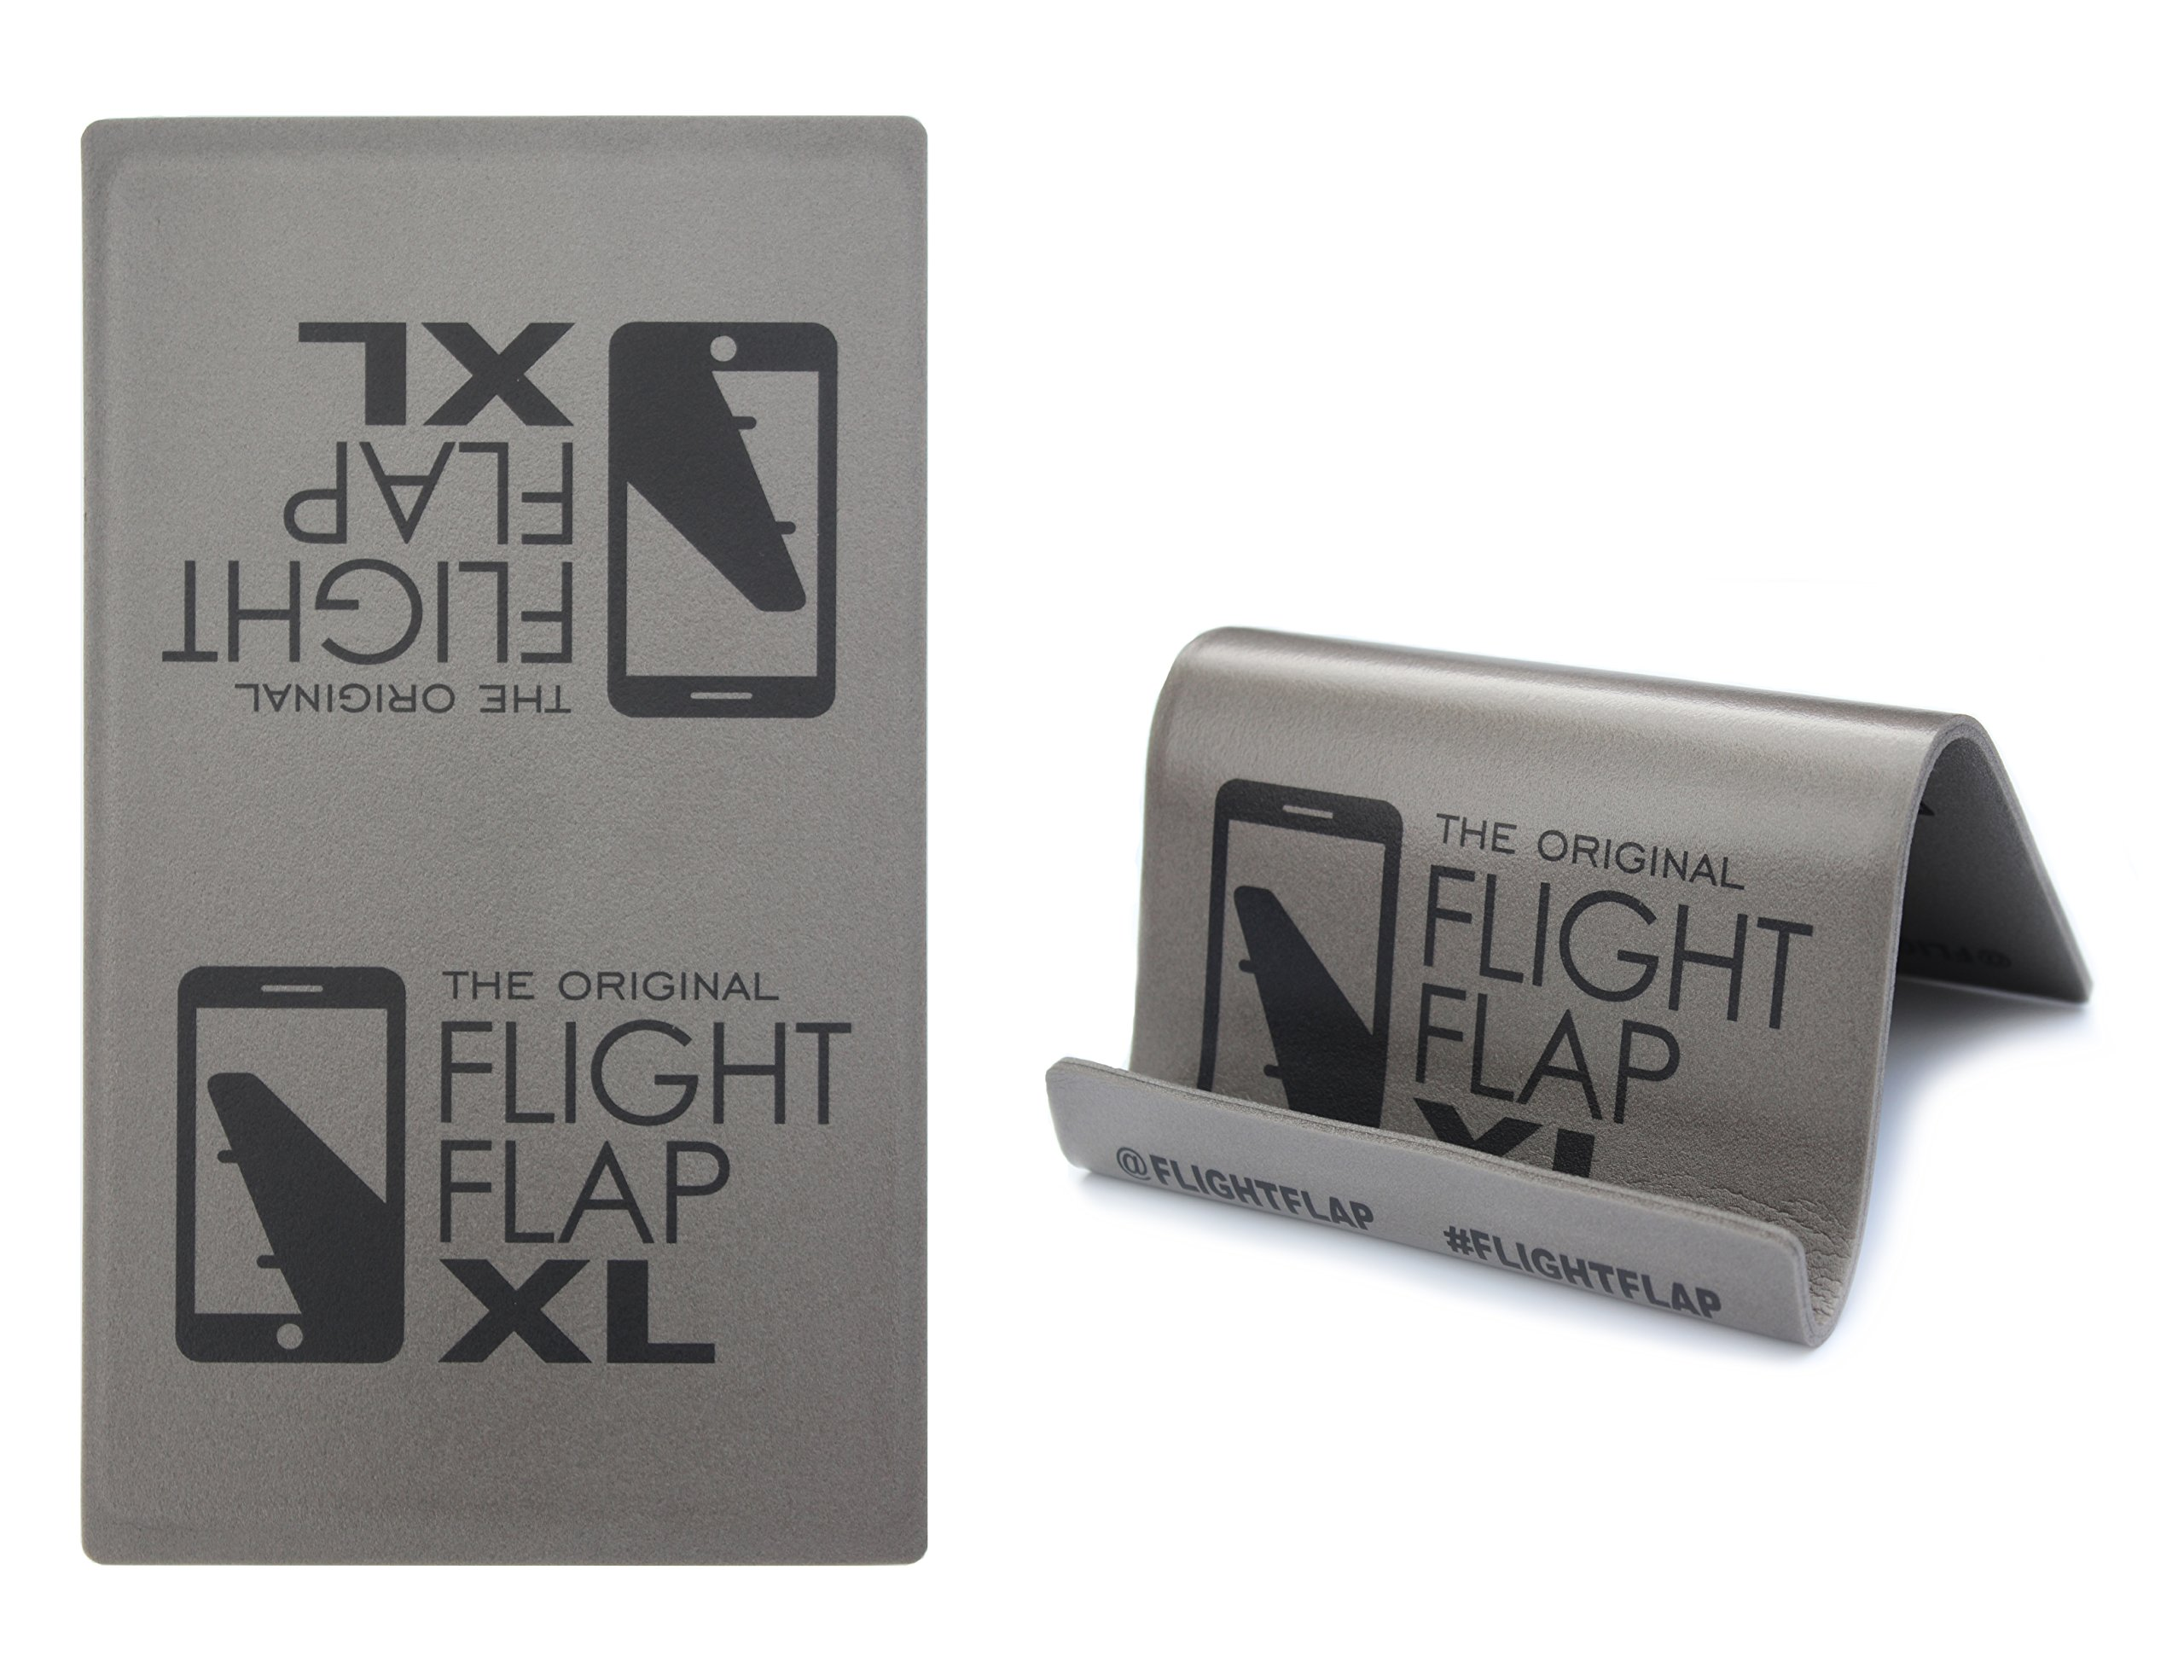 Flight Flap XL - Tablet Holder, Designed for Air Travel - Flying, Traveling, In-Flight Stand for iPad, Surface and Kindle tablet devices